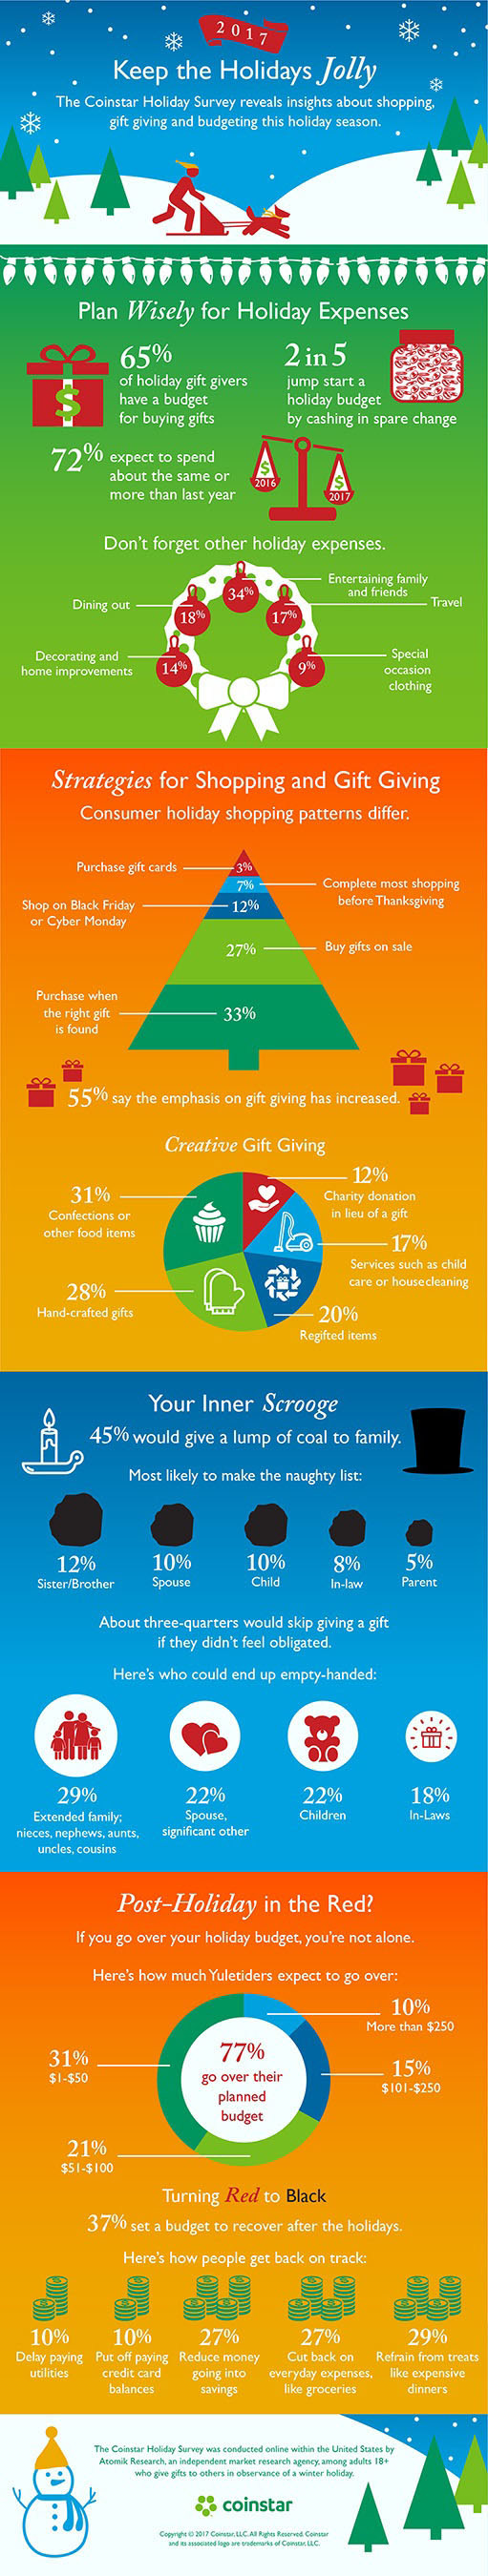 "The Coinstar Holiday Survey, conducted among 2,000 U.S. adults, reports that the majority (65%) will set a budget this holiday season. The holiday infographic showcases results including budgeting and shopping strategies, creative gift giving, the ""Scrooge effect"" as well as ways to recover post-holiday if budget limits are exceeded."